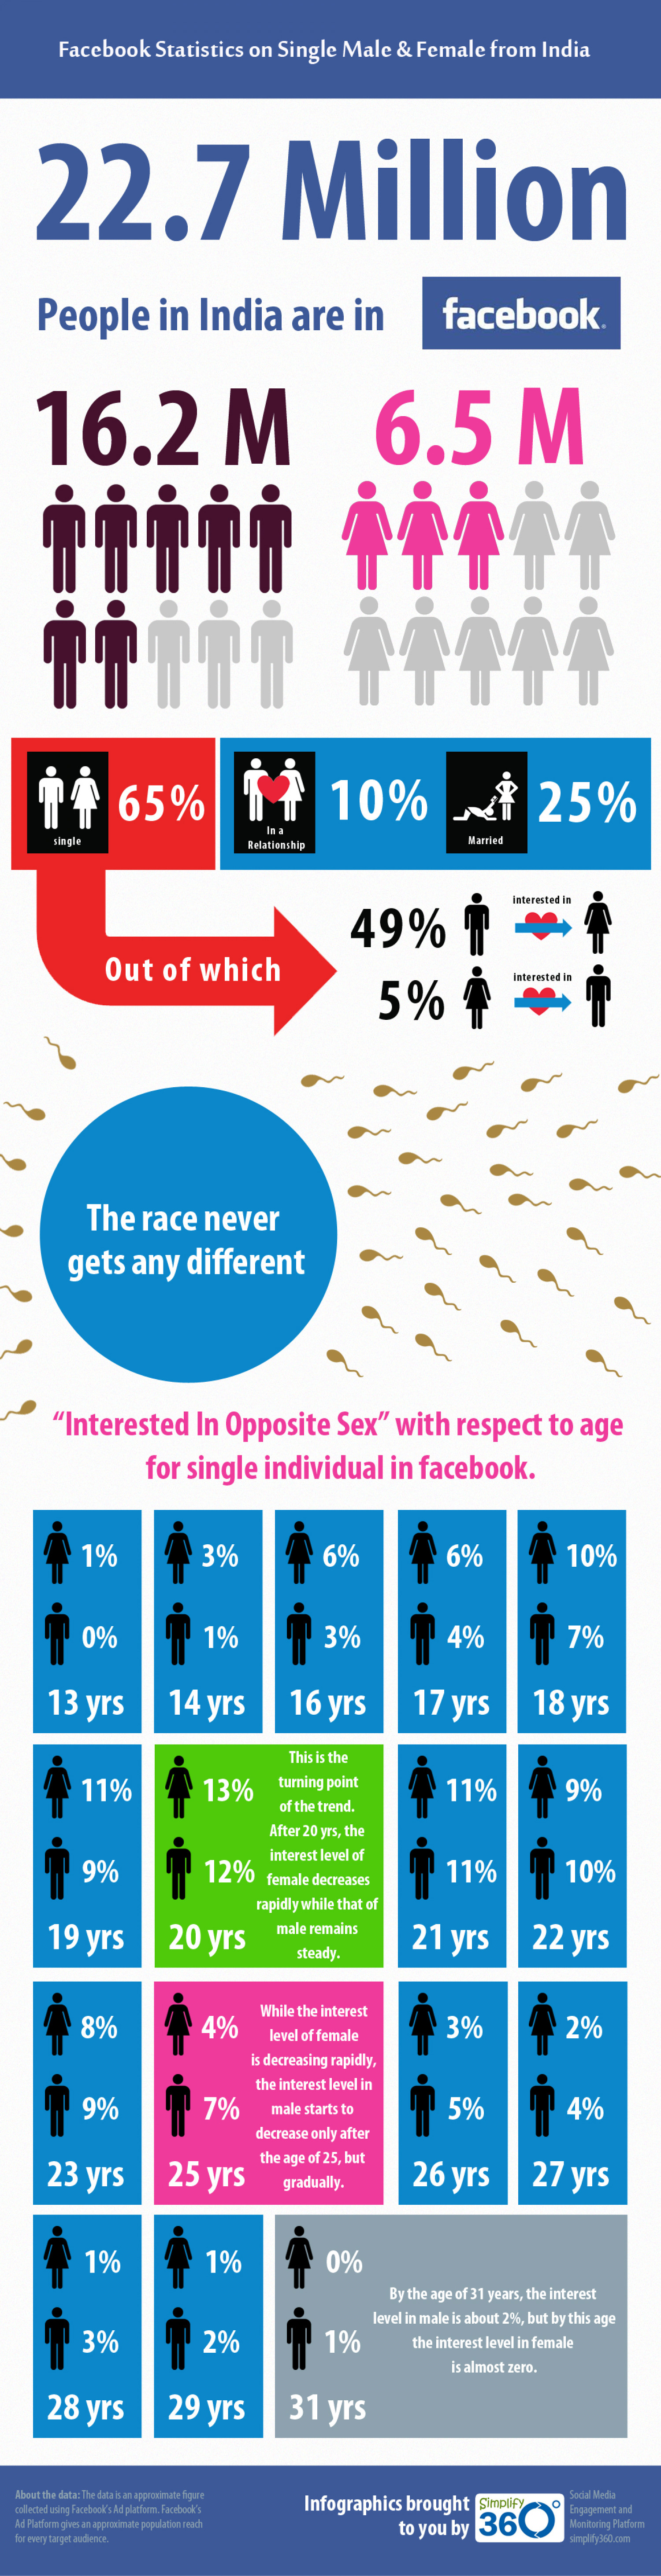 Facebook Statistics on Single Male and Female from India  Infographic